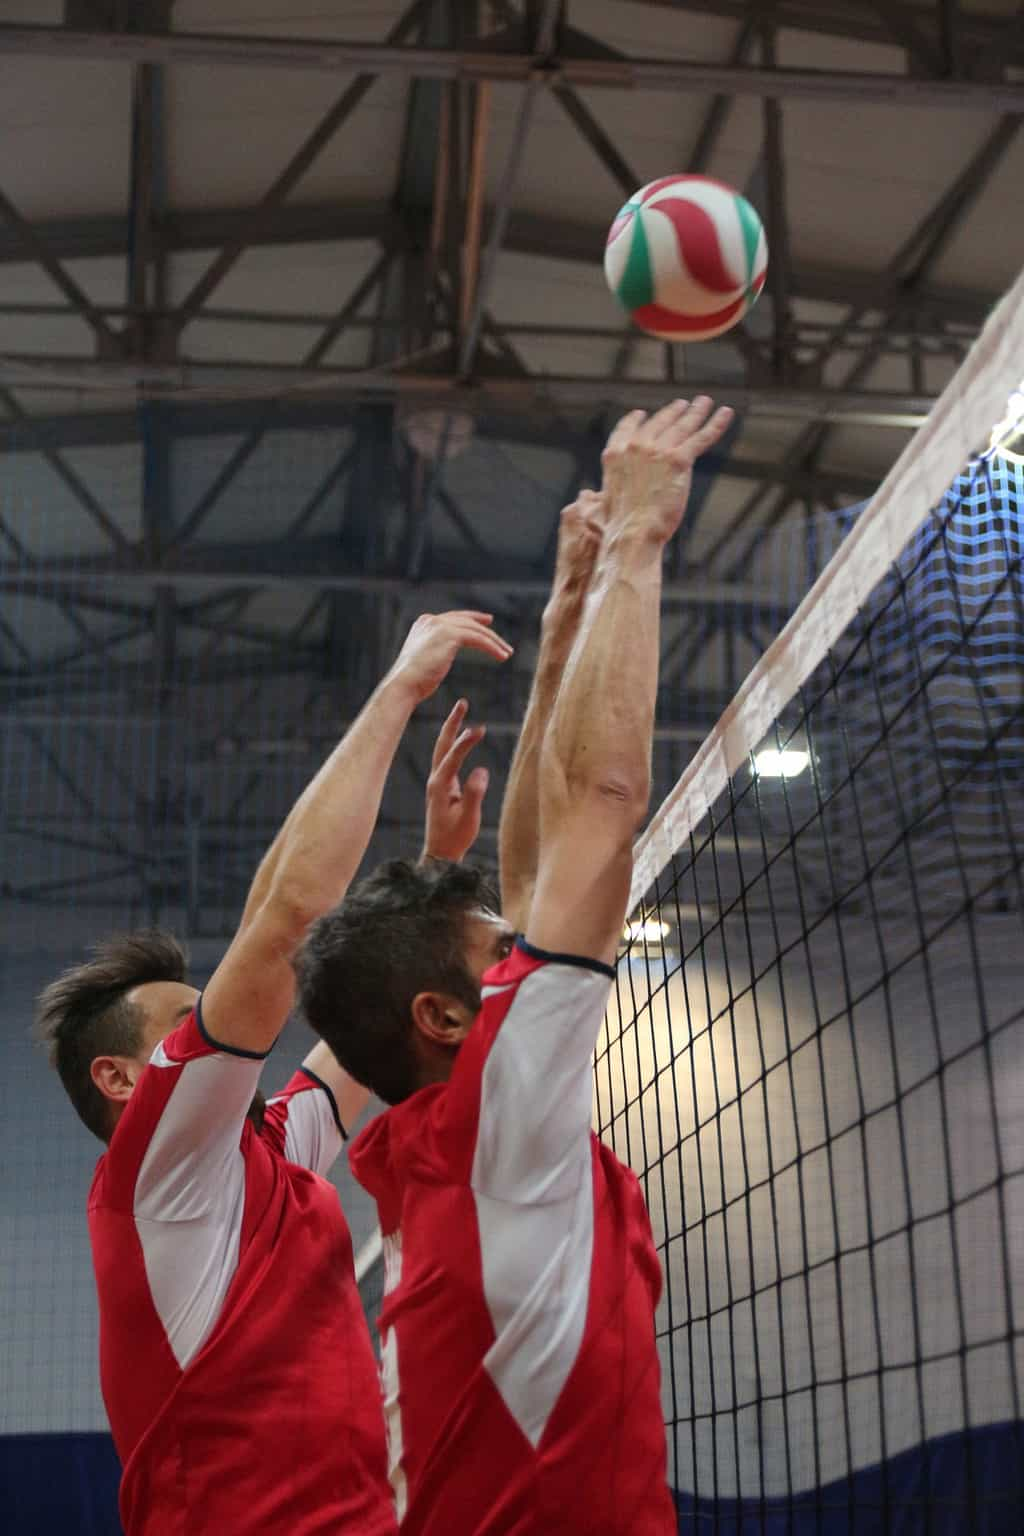 Two volleyball players blocking the ball